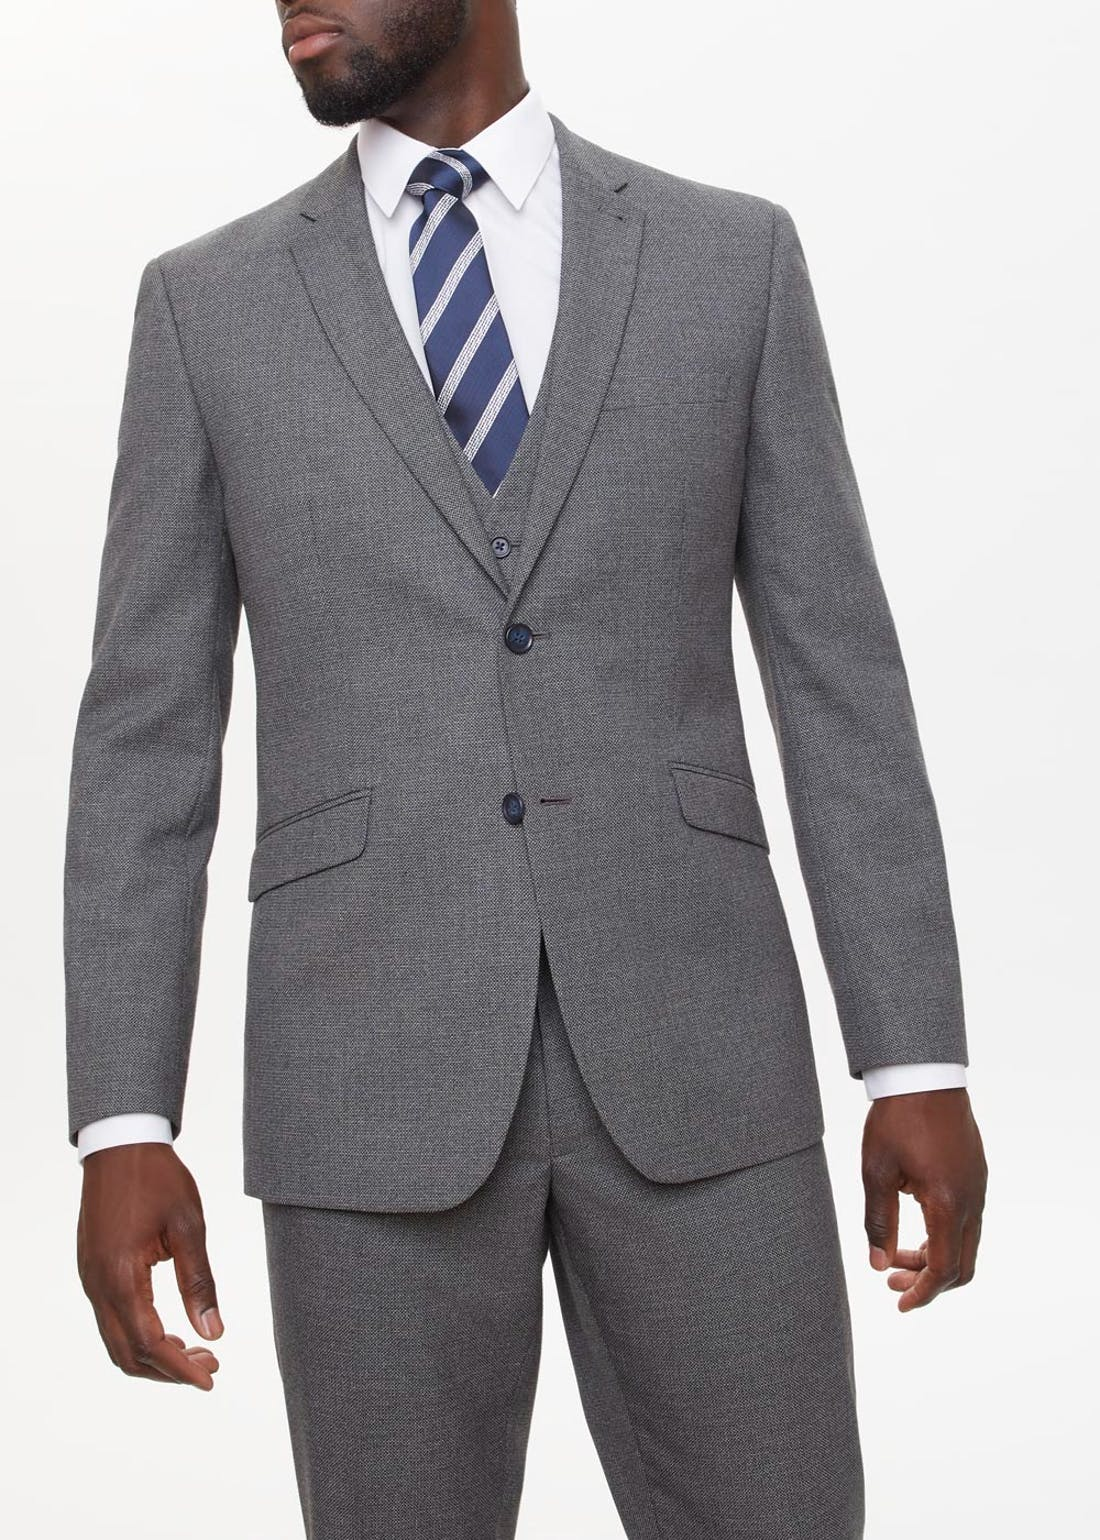 Taylor & Wright Ambleside Tailored Fit Suit Jacket